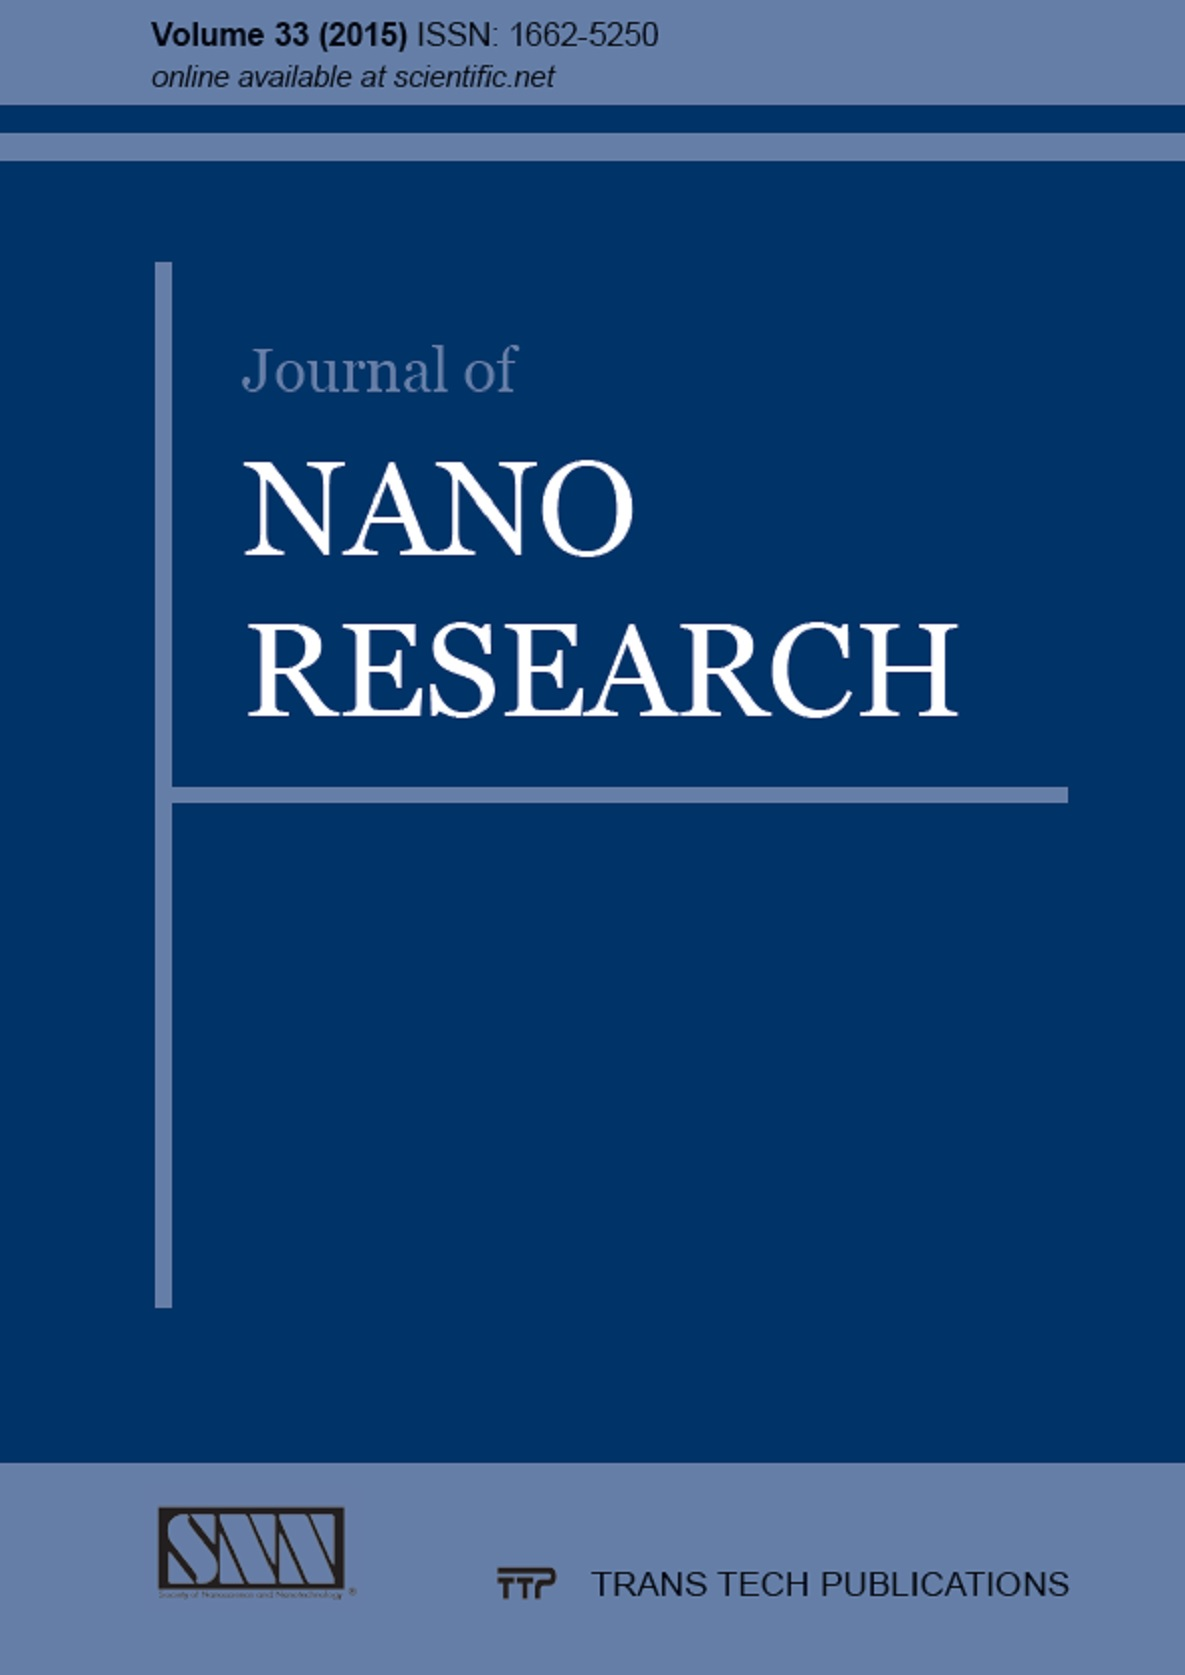 Journal of Nano Research Vol. 33